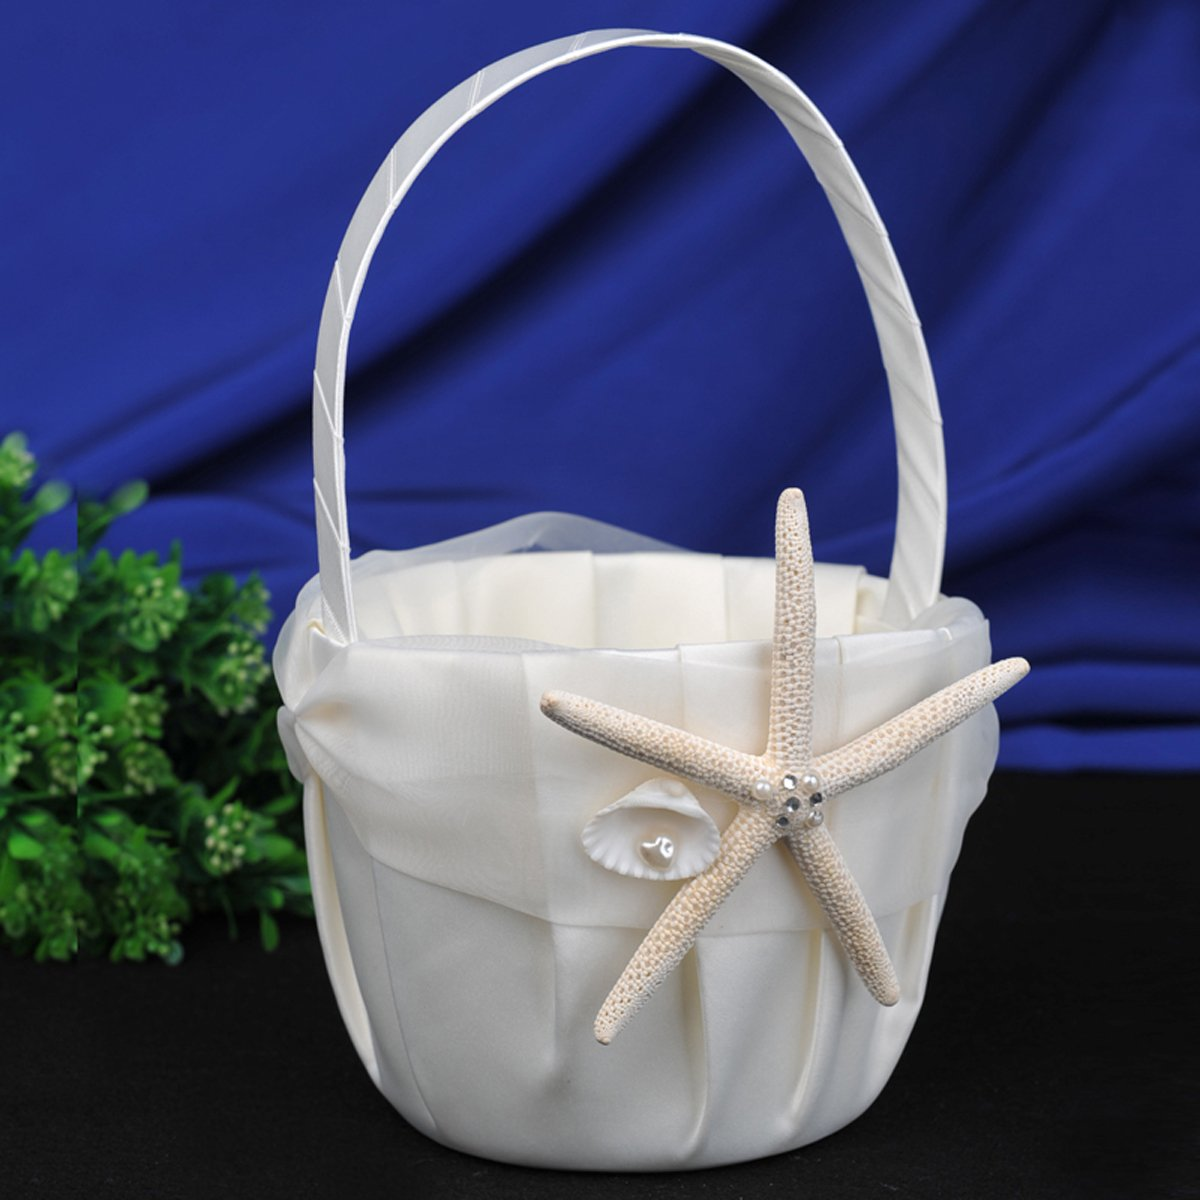 Amazon topwedding beach themed ivory satin flower girl basket amazon topwedding beach themed ivory satin flower girl basket with sea star and seashell home kitchen izmirmasajfo